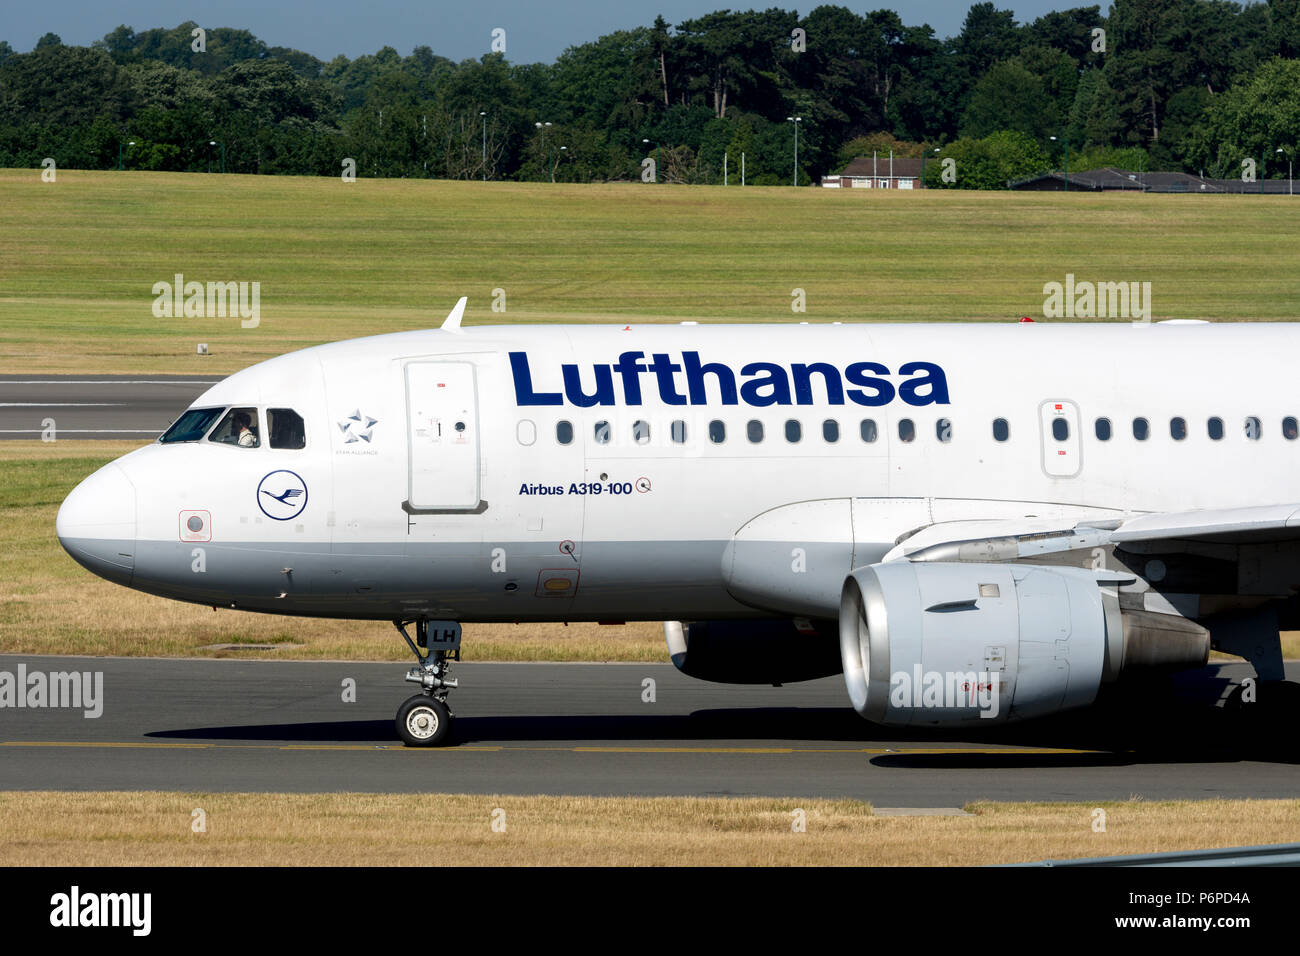 Lufthansa Airbus A319-114 taxiing for take off at Birmingham Airport, UK (D-AILH) - Stock Image